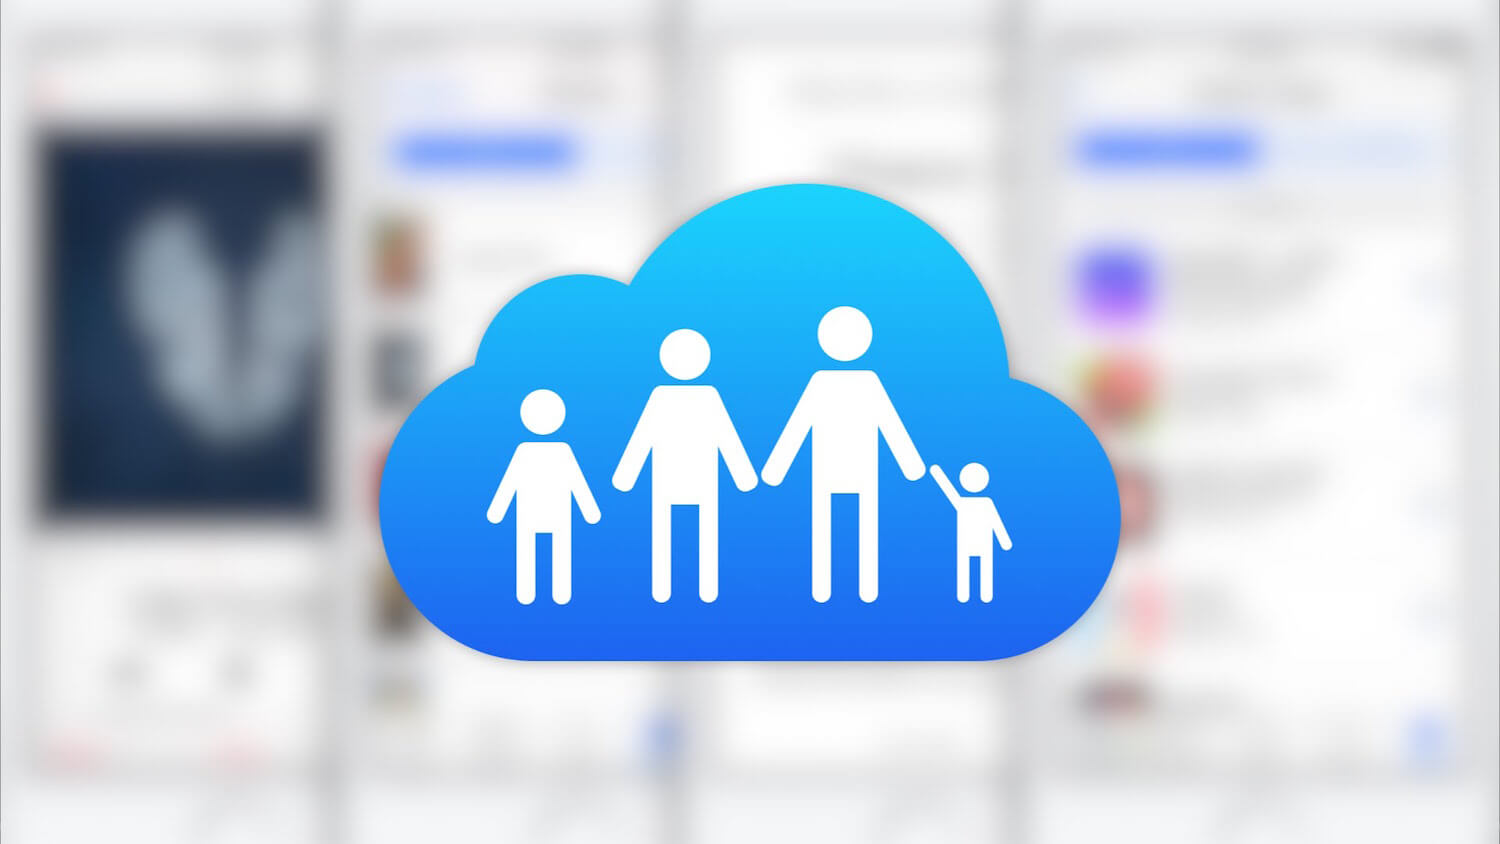 how to send pics to icloud drive